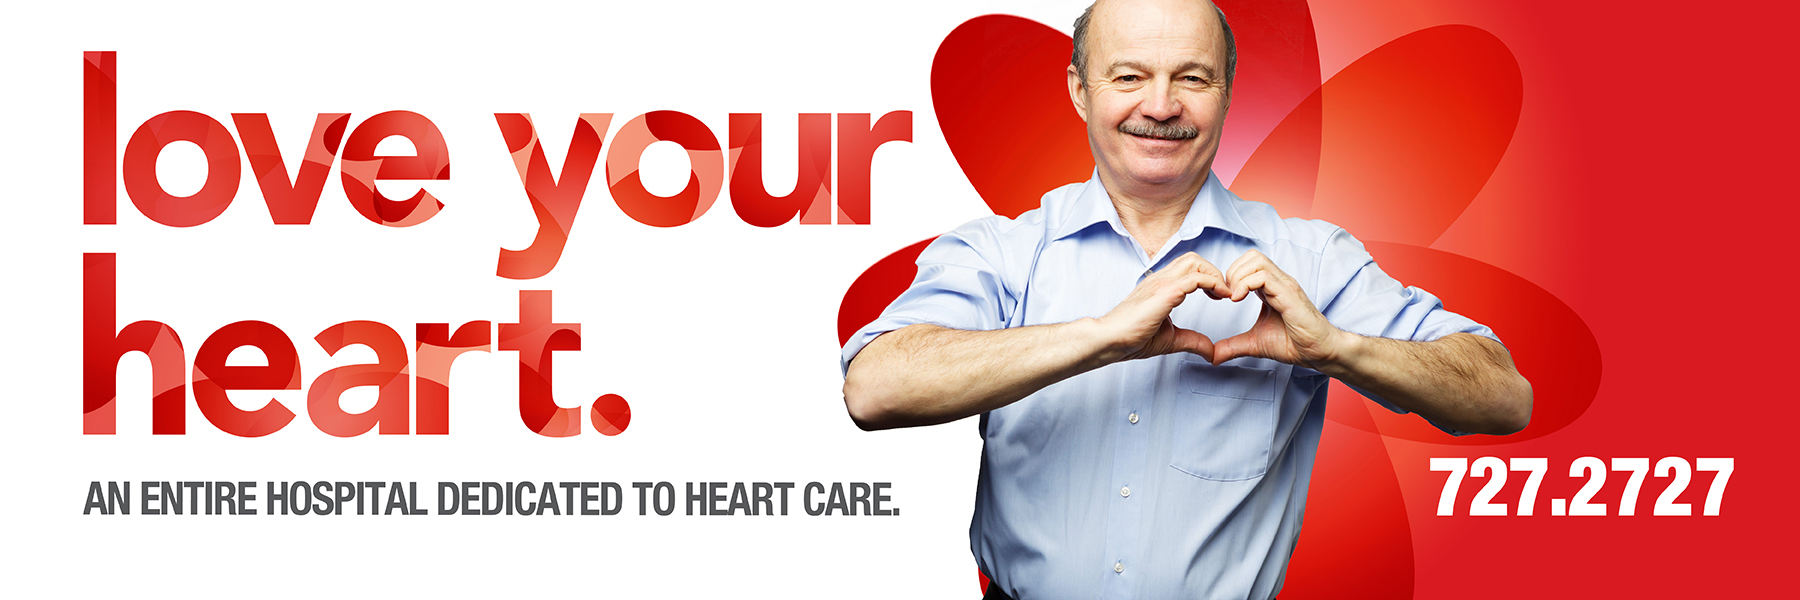 Heart Hospital of New Mexico is an entire hospital dedicated to heart care